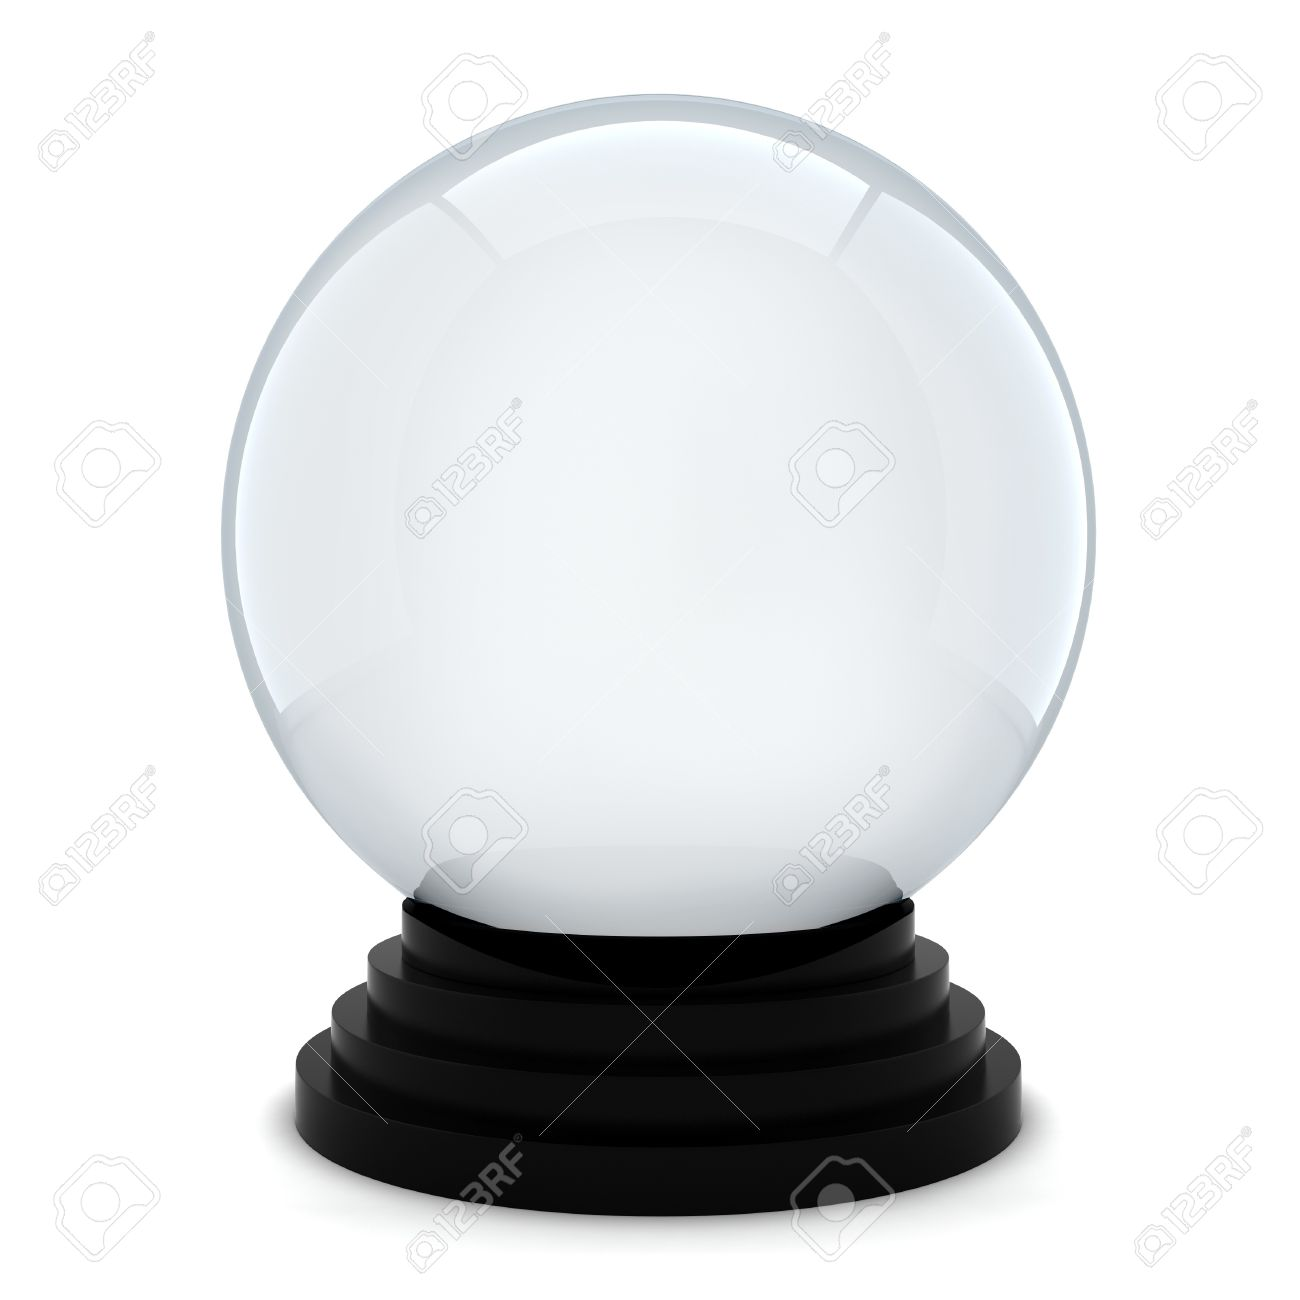 Crystal Ball clipart #7, Download drawings